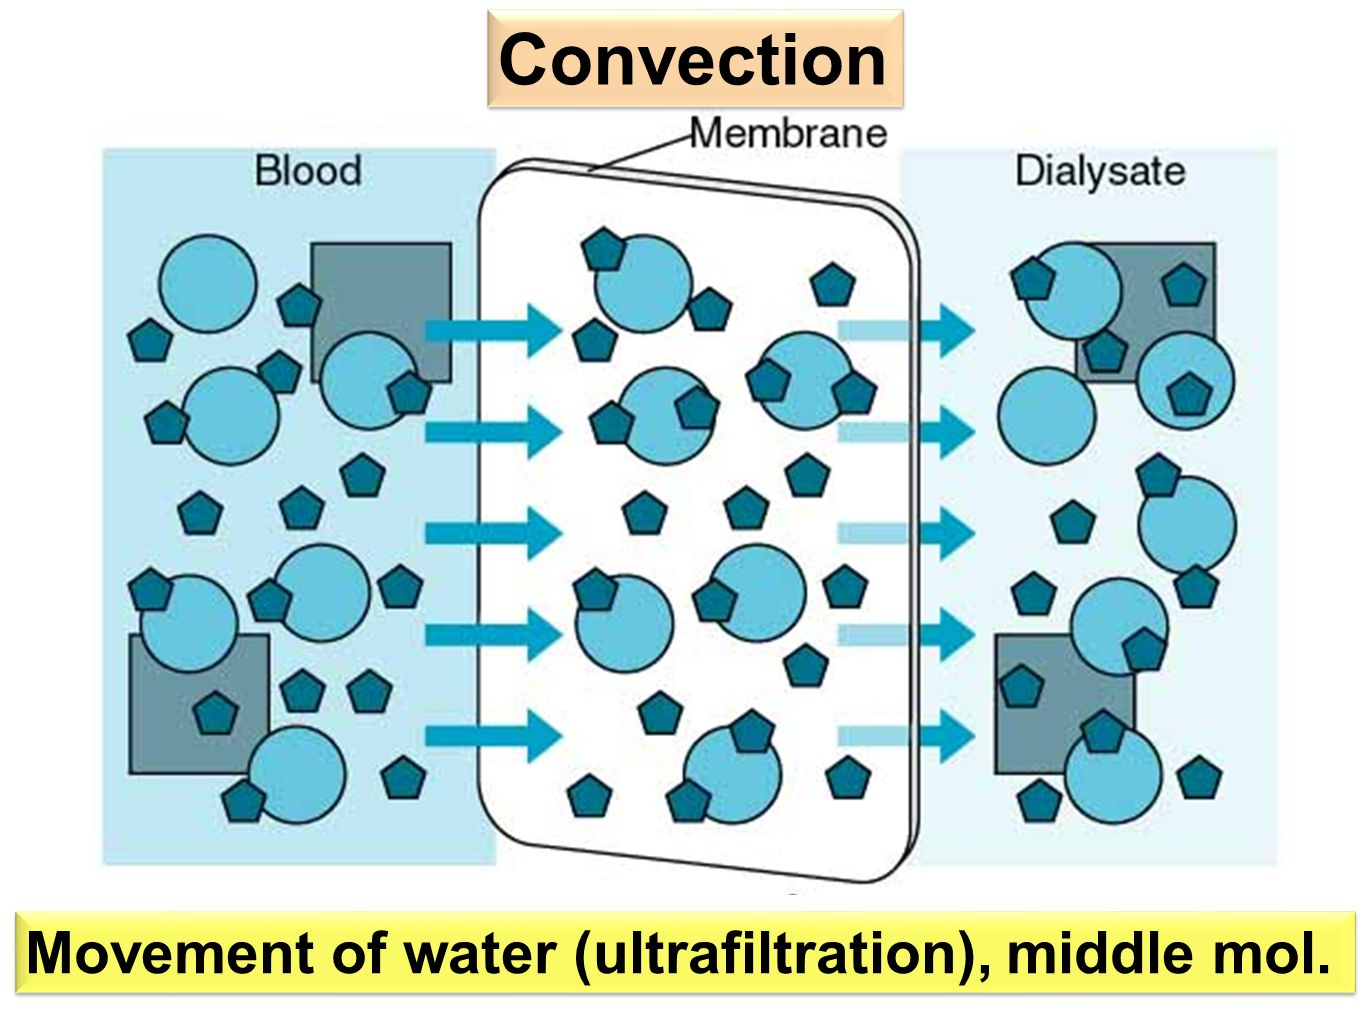 Movement of water (ultrafiltration), middle mol. Convection